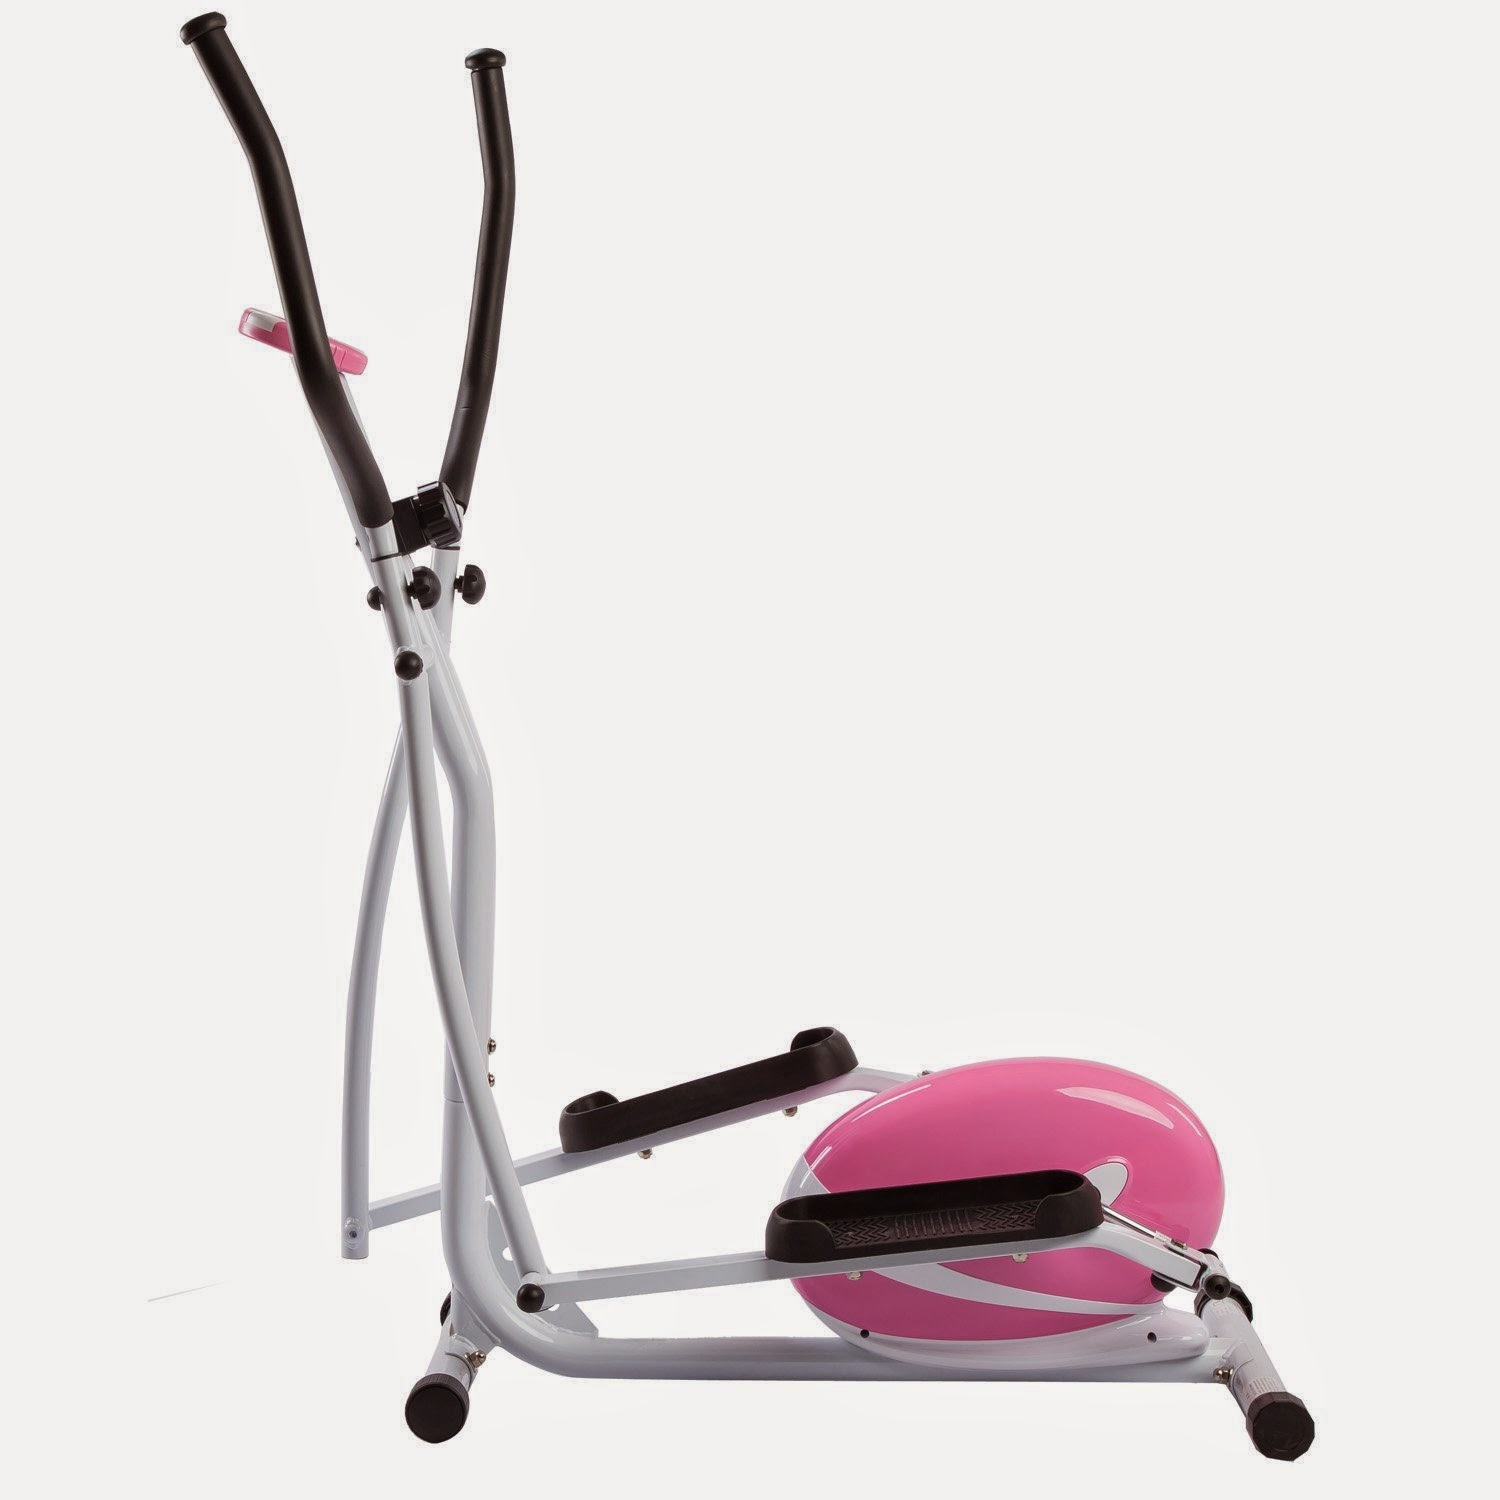 Sunny Health & Fitness Pink Magnetic Elliptical Trainer P8300, review, easy to use, 8 levels of resistance, monitor displays your workout stats